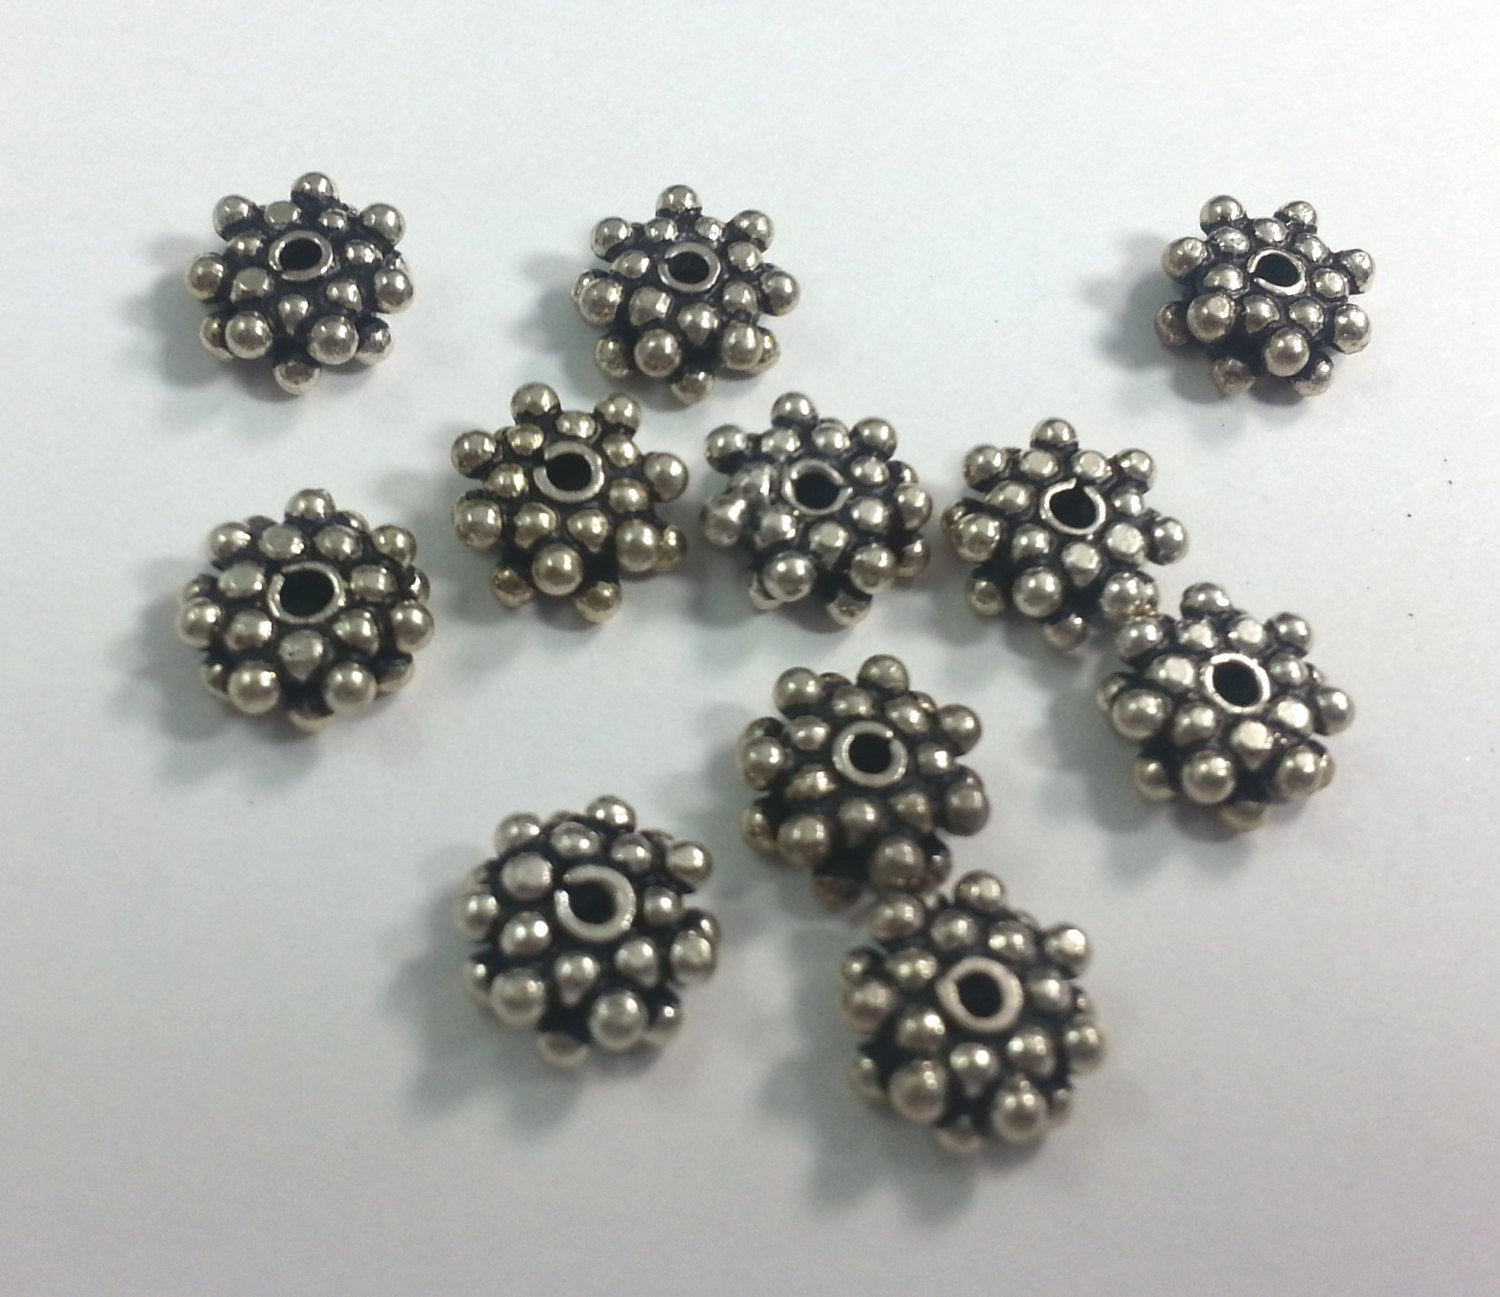 8.5mm Double Daisy Sterling Silver Spacers, Bag of 20